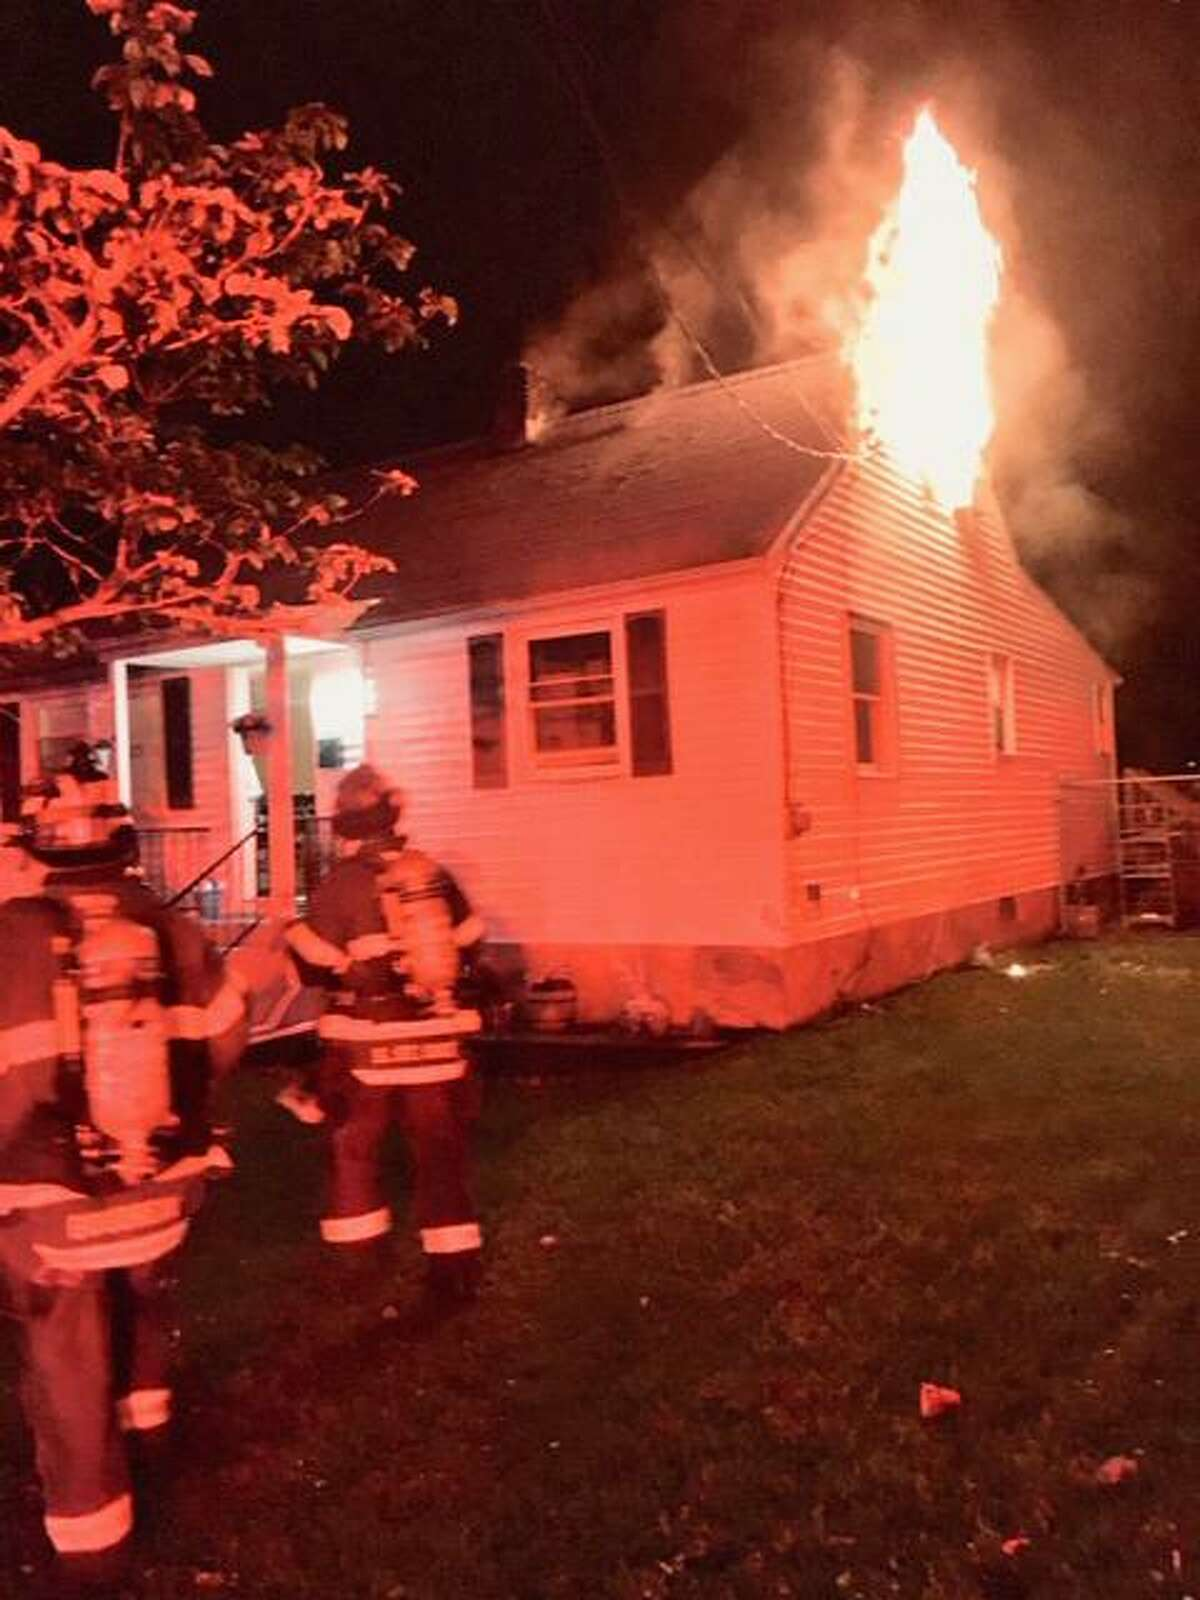 Three people escaped a house fire unharmed on Curtone Road late Wednesday.